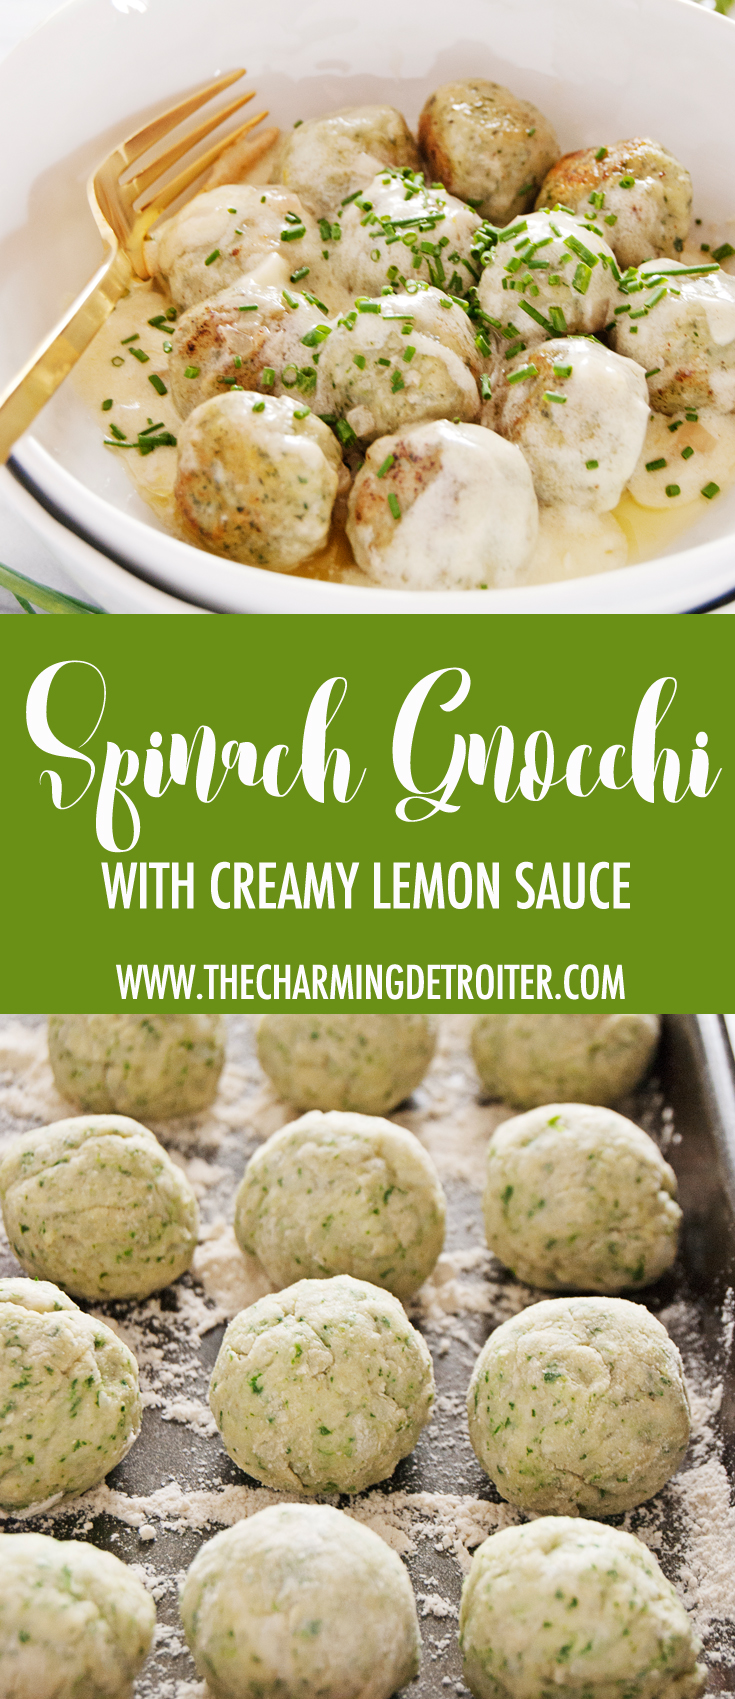 These homemade spinach gnocchi are crispy on the outside, melt-in-your-mouth on the inside, and paired with a luscious creamy lemon butter sauce.